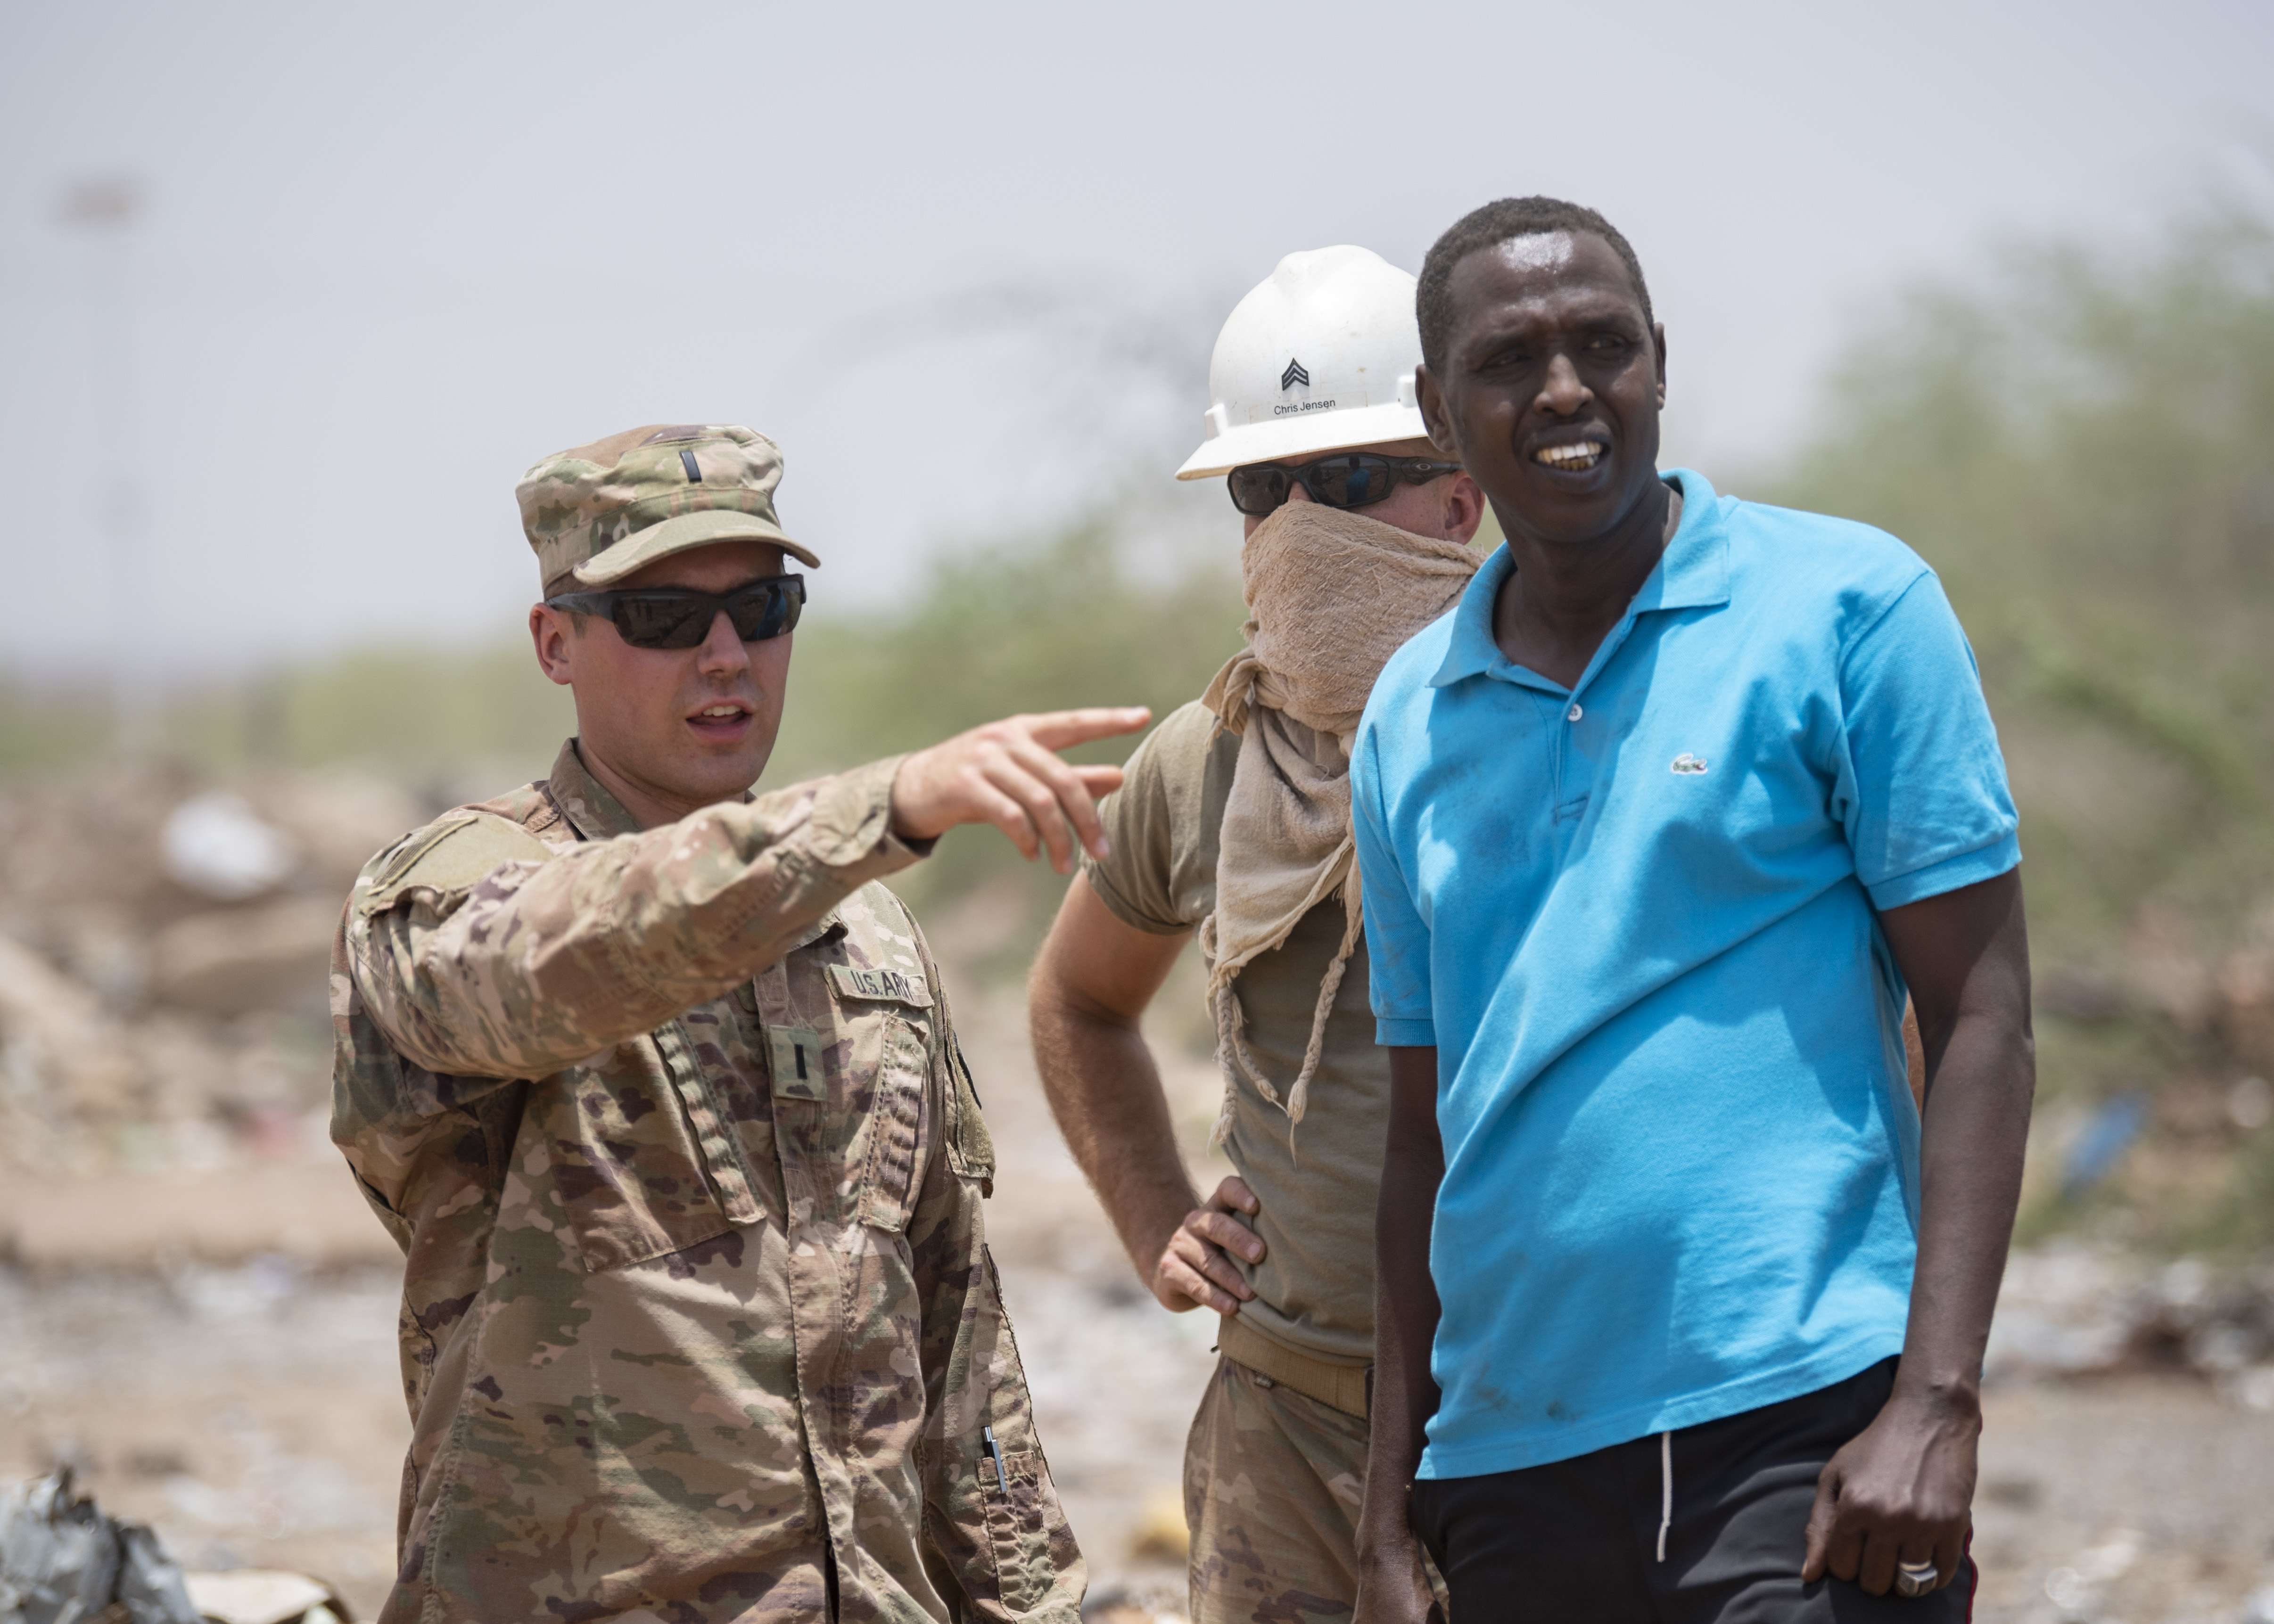 U.S. Army 1st Lt. Daniel Csakai, platoon leader, 465th Engineer Company, 926th Engineer Battalion, 926th Engineer Brigade, 412th Theater Engineer Command, based in Birmingham, Alabama, assigned to Combined Joint Task Force-Horn of Africa, speaks with a Djibouti Fire Brigade firefighter about the firefighting efforts at Douda landfill in Djibouti, Aug. 14, 2019. During a fire at the landfill, the 465th used bulldozers to create dirt berms that would make firebreaks and stop the flames from spreading outward. (U.S. Air Force photo by Staff Sgt. J.D. Strong II)